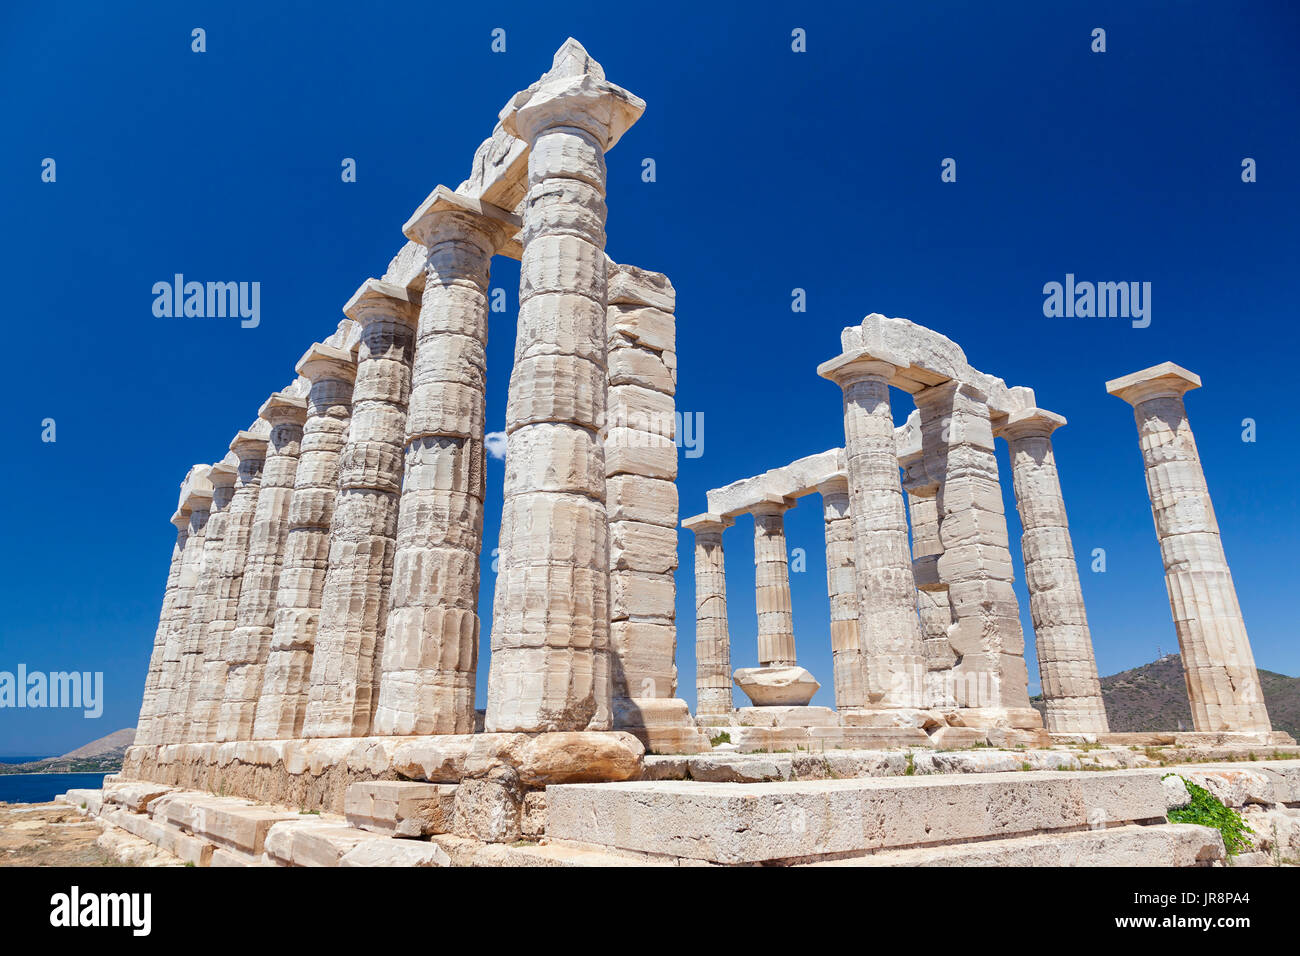 The temple of Poseidon, in Sounion cape, on of the most emblematic and popular archaeological sites in Greece. - Stock Image